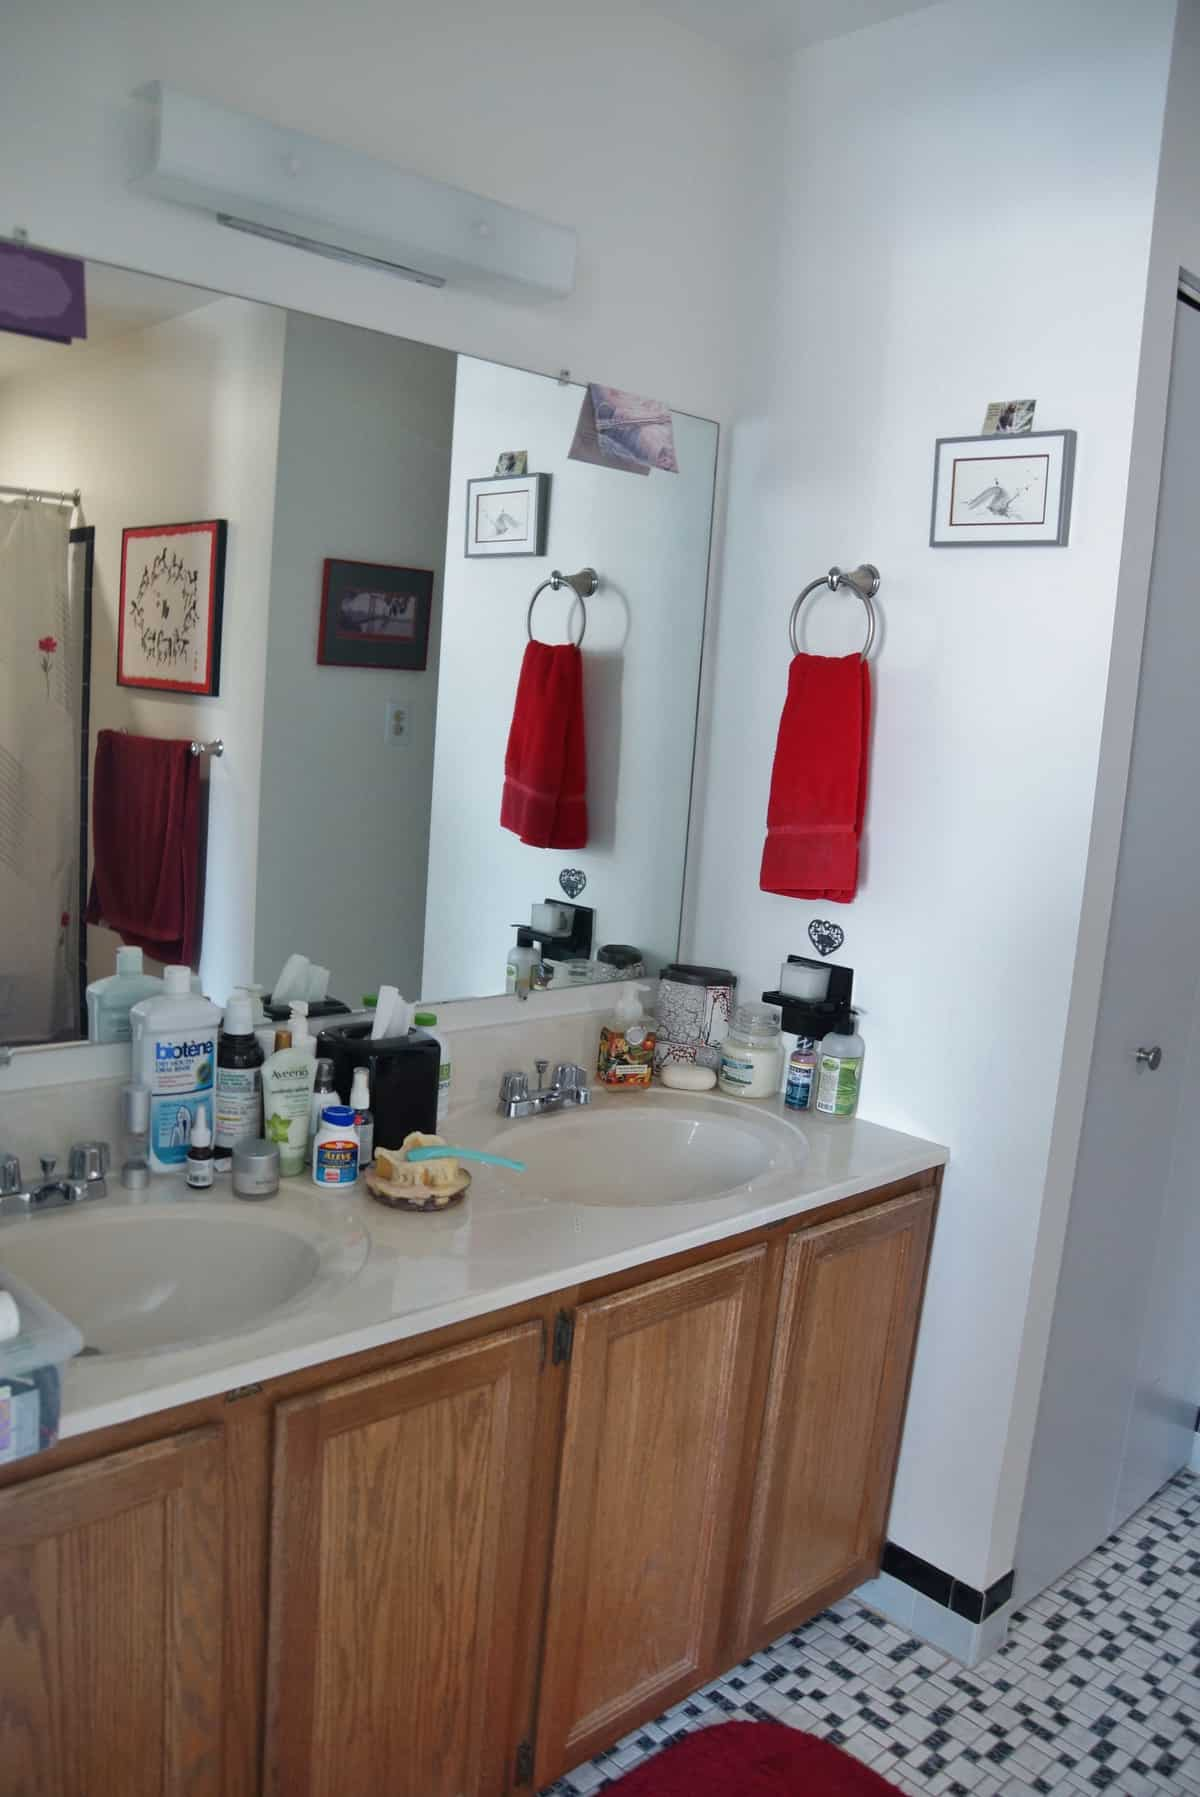 Spa Bathroom Renovation: Complete! | HeartWork Organizing, Tips for ...